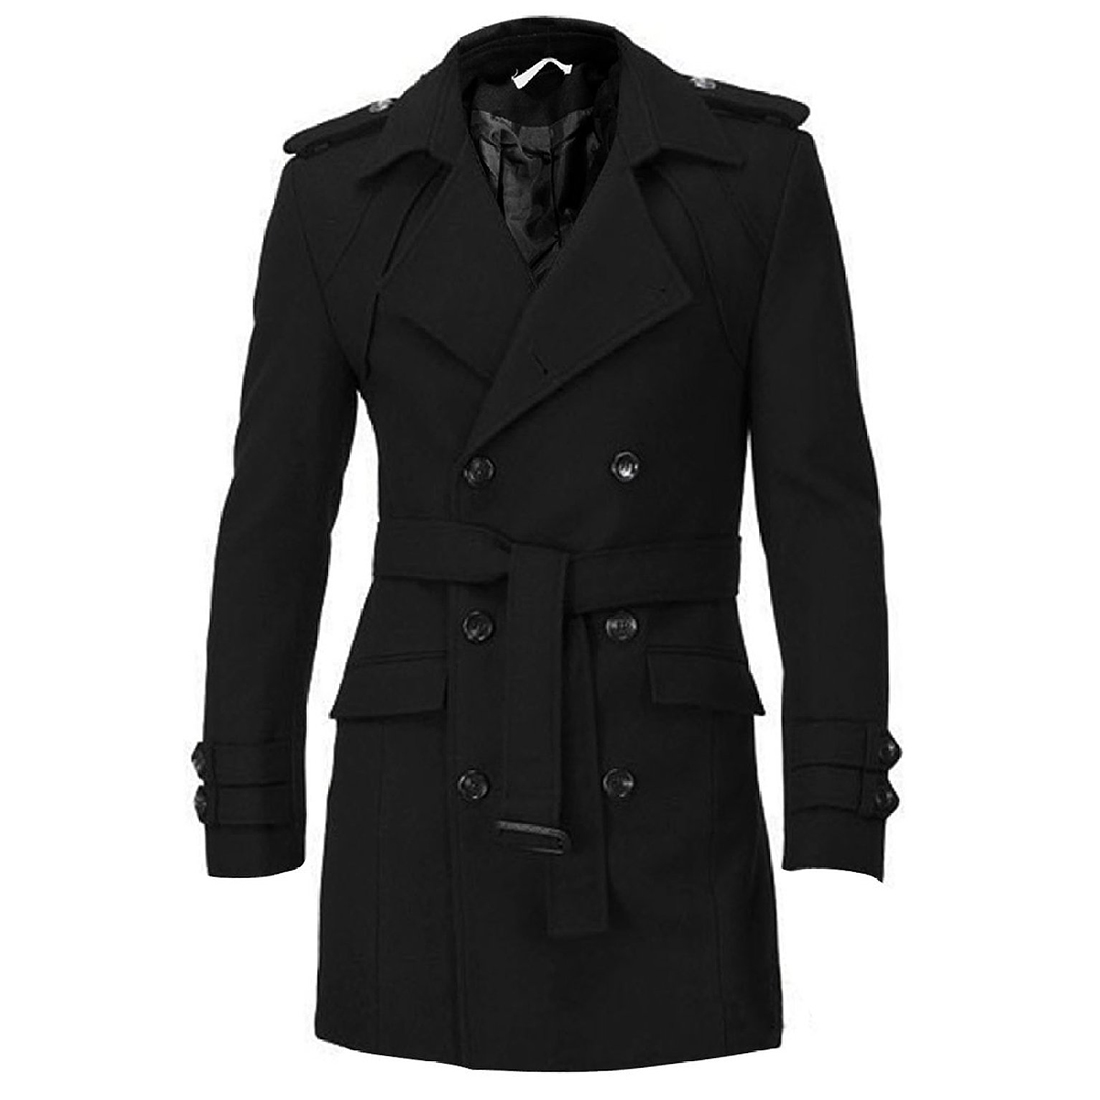 Men Epaulets Slim Fit Double Breasted Belted Worsted Coat Trench Winter Long Jacket Double Breasted Overcoat